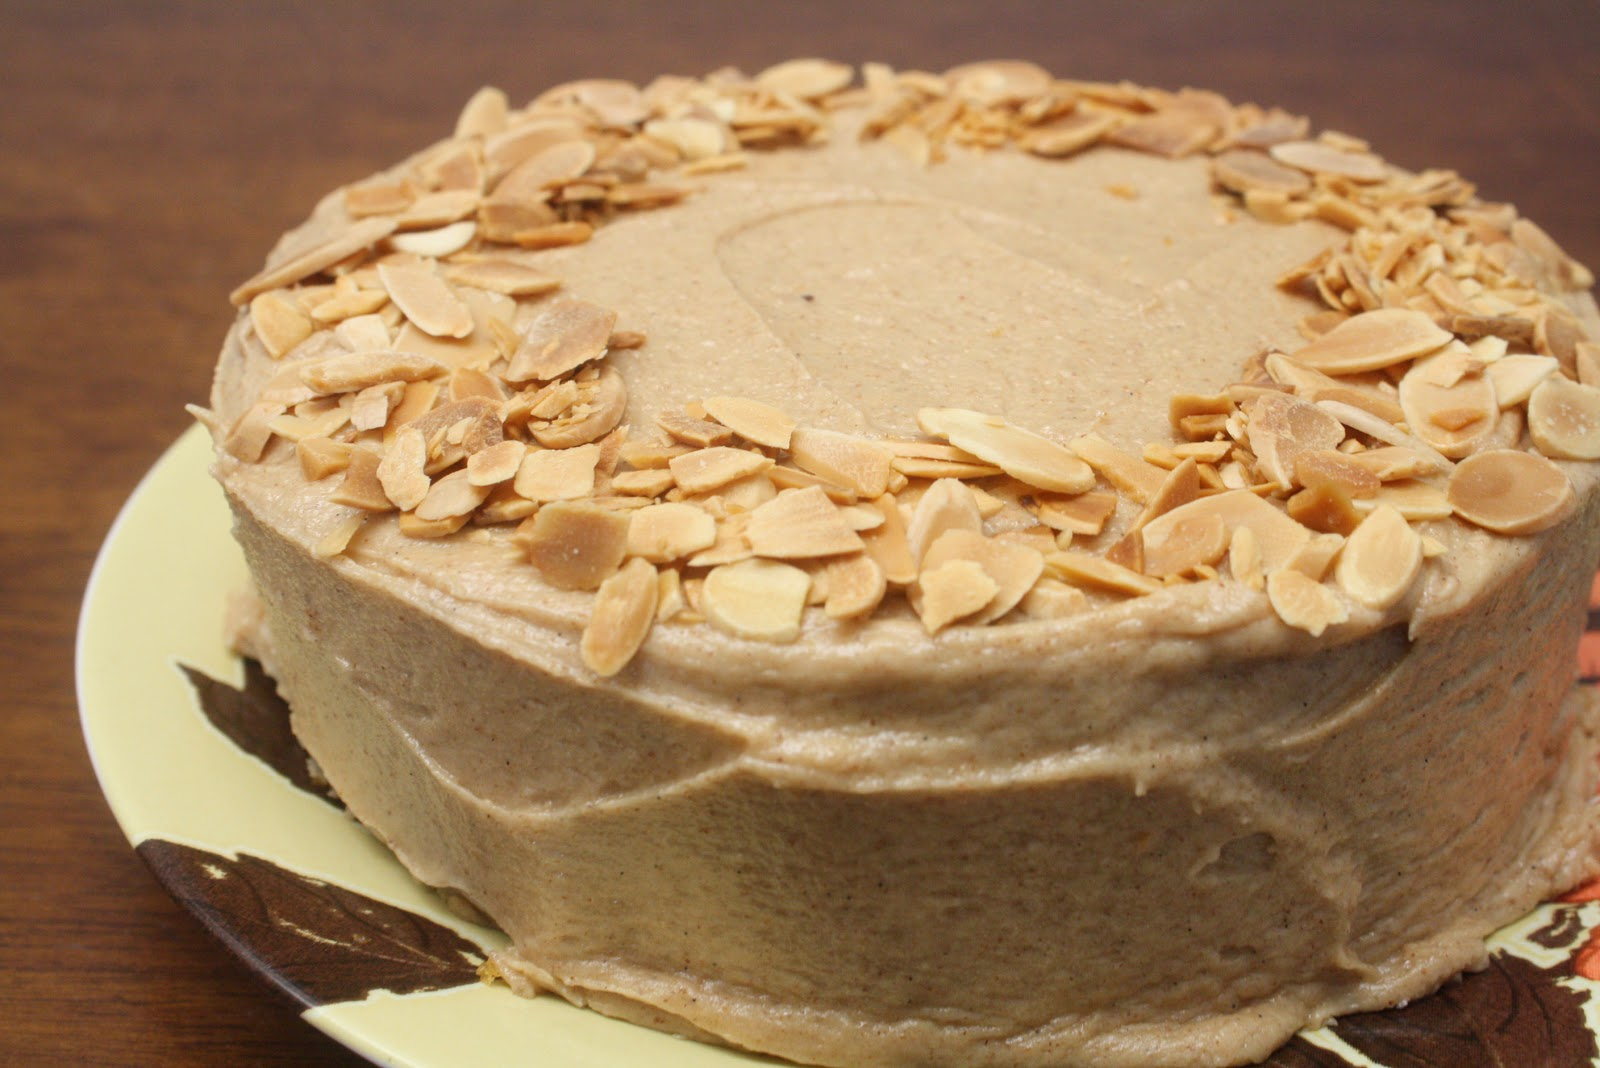 ... Baked Sunday Mornings: Pumpkin Almond Cake with Almond Butter Frosting